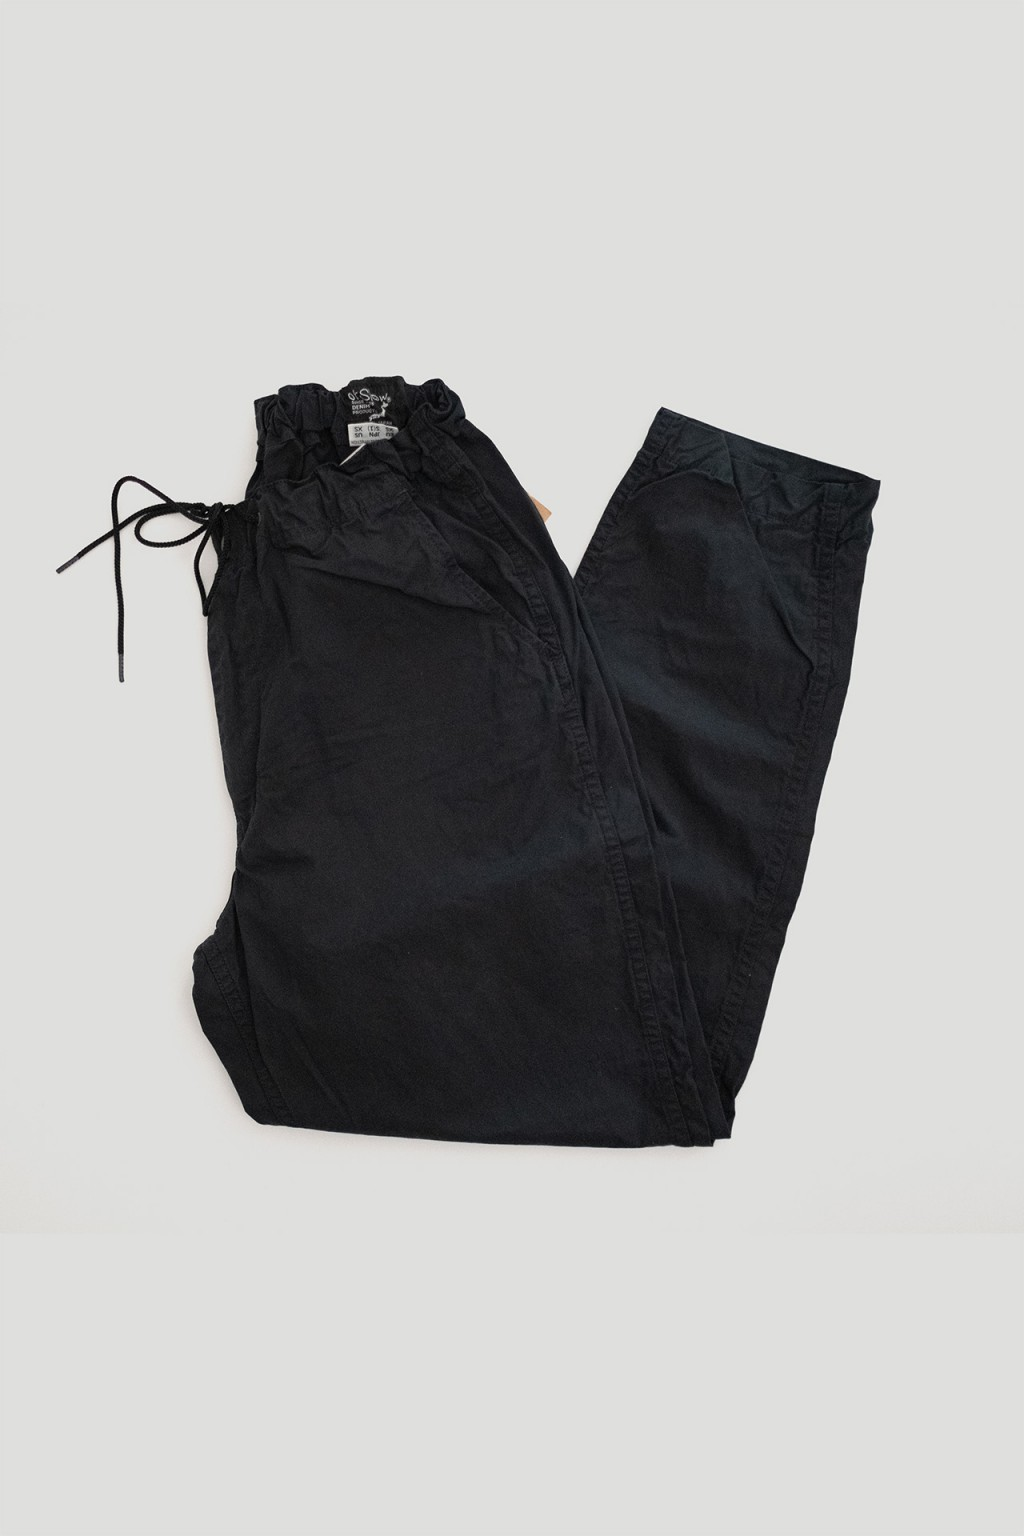 Orslow New Yorker 60 Charcoal